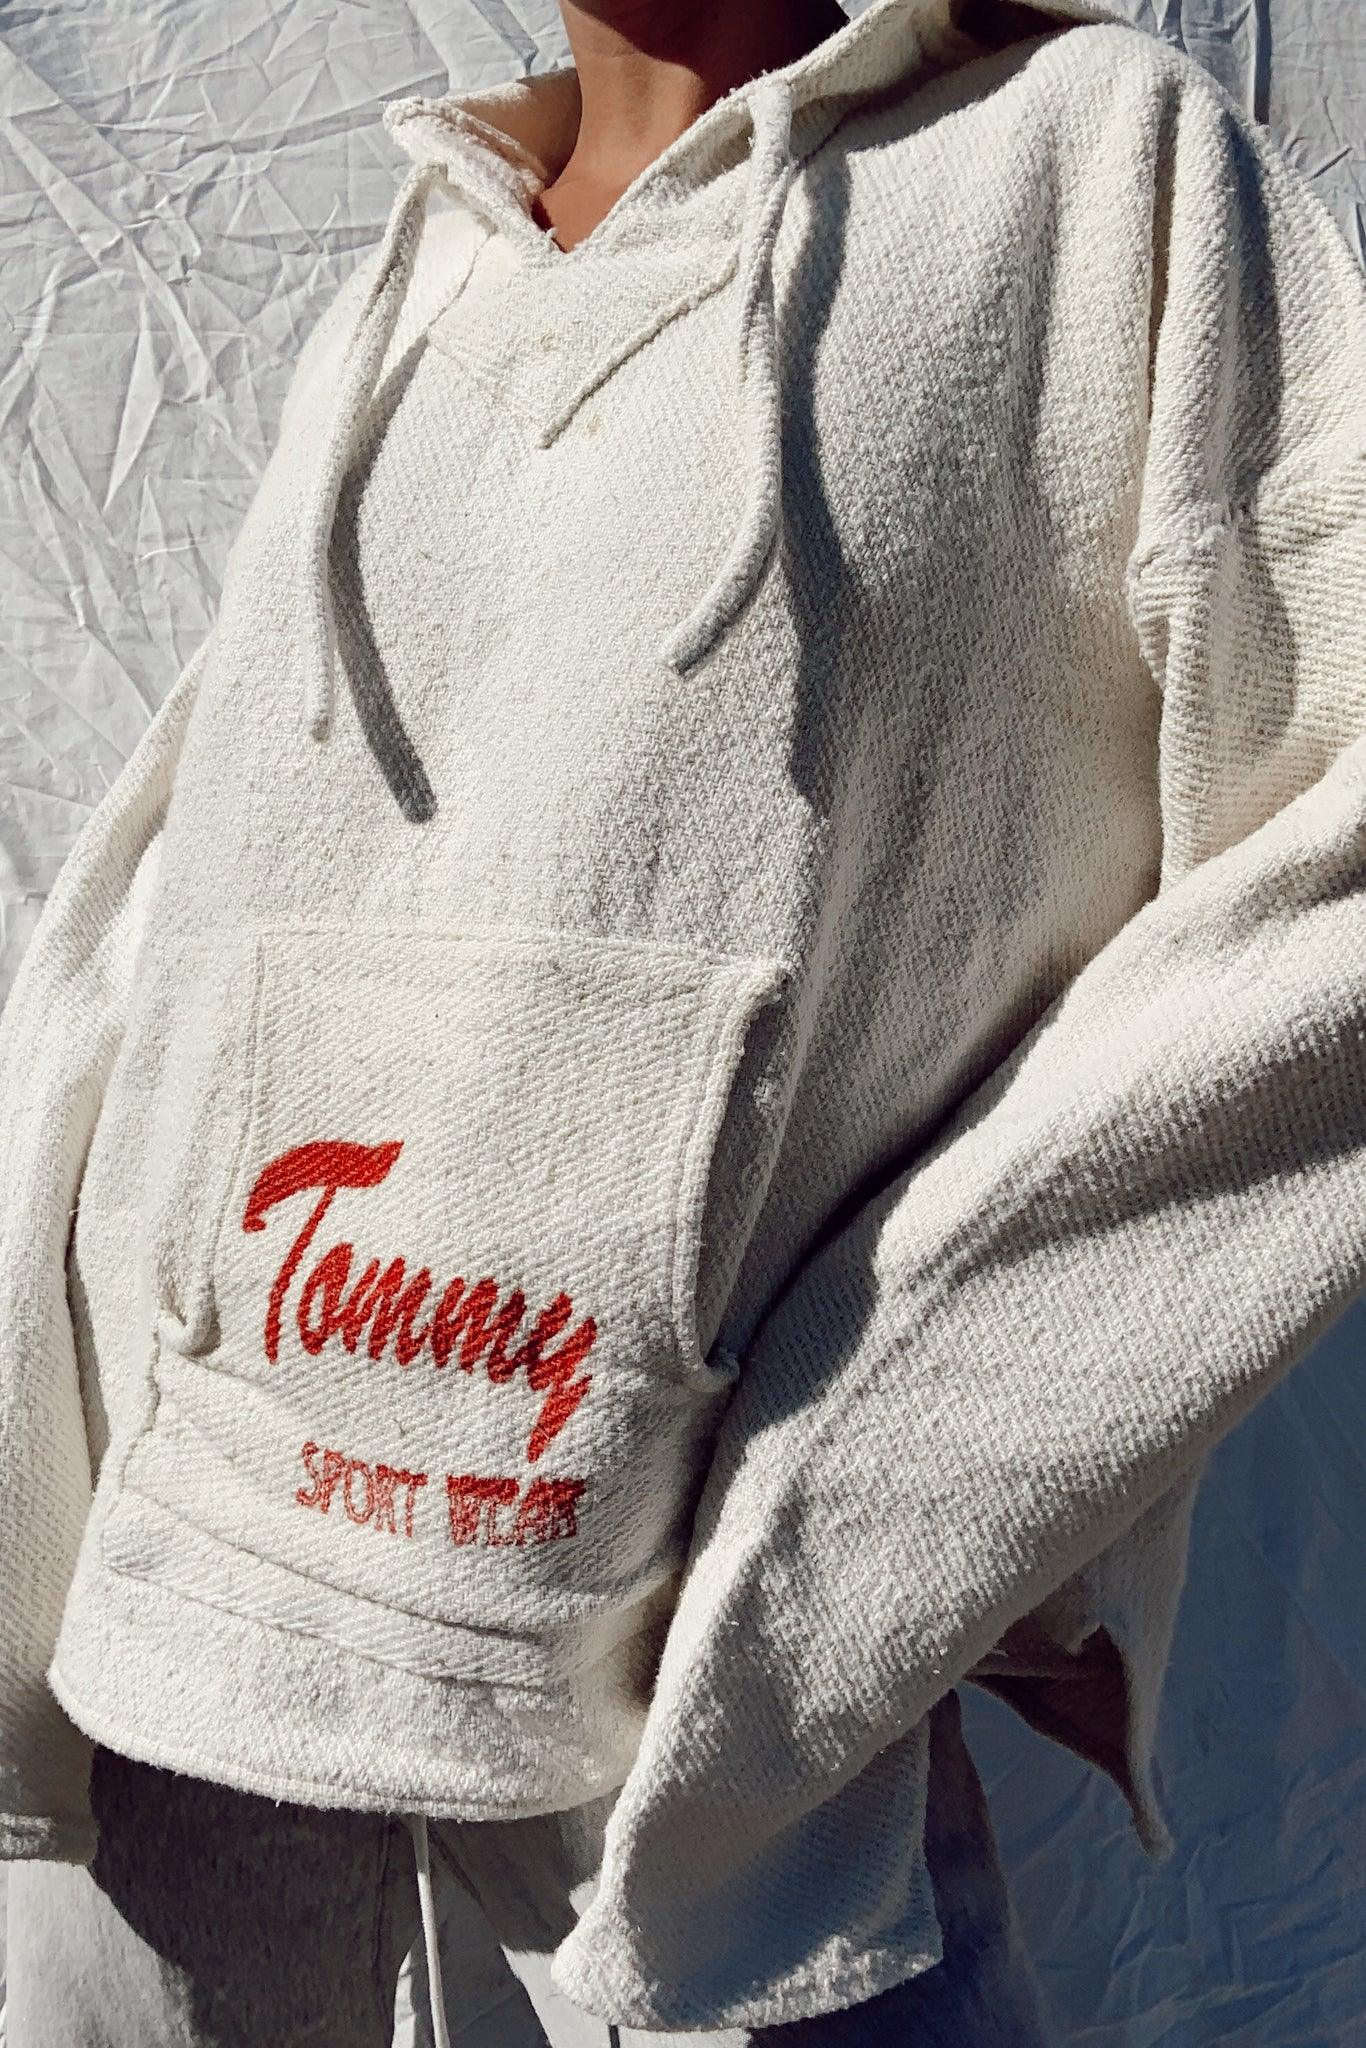 Tommy Hilfiger Cover Up (S-L)